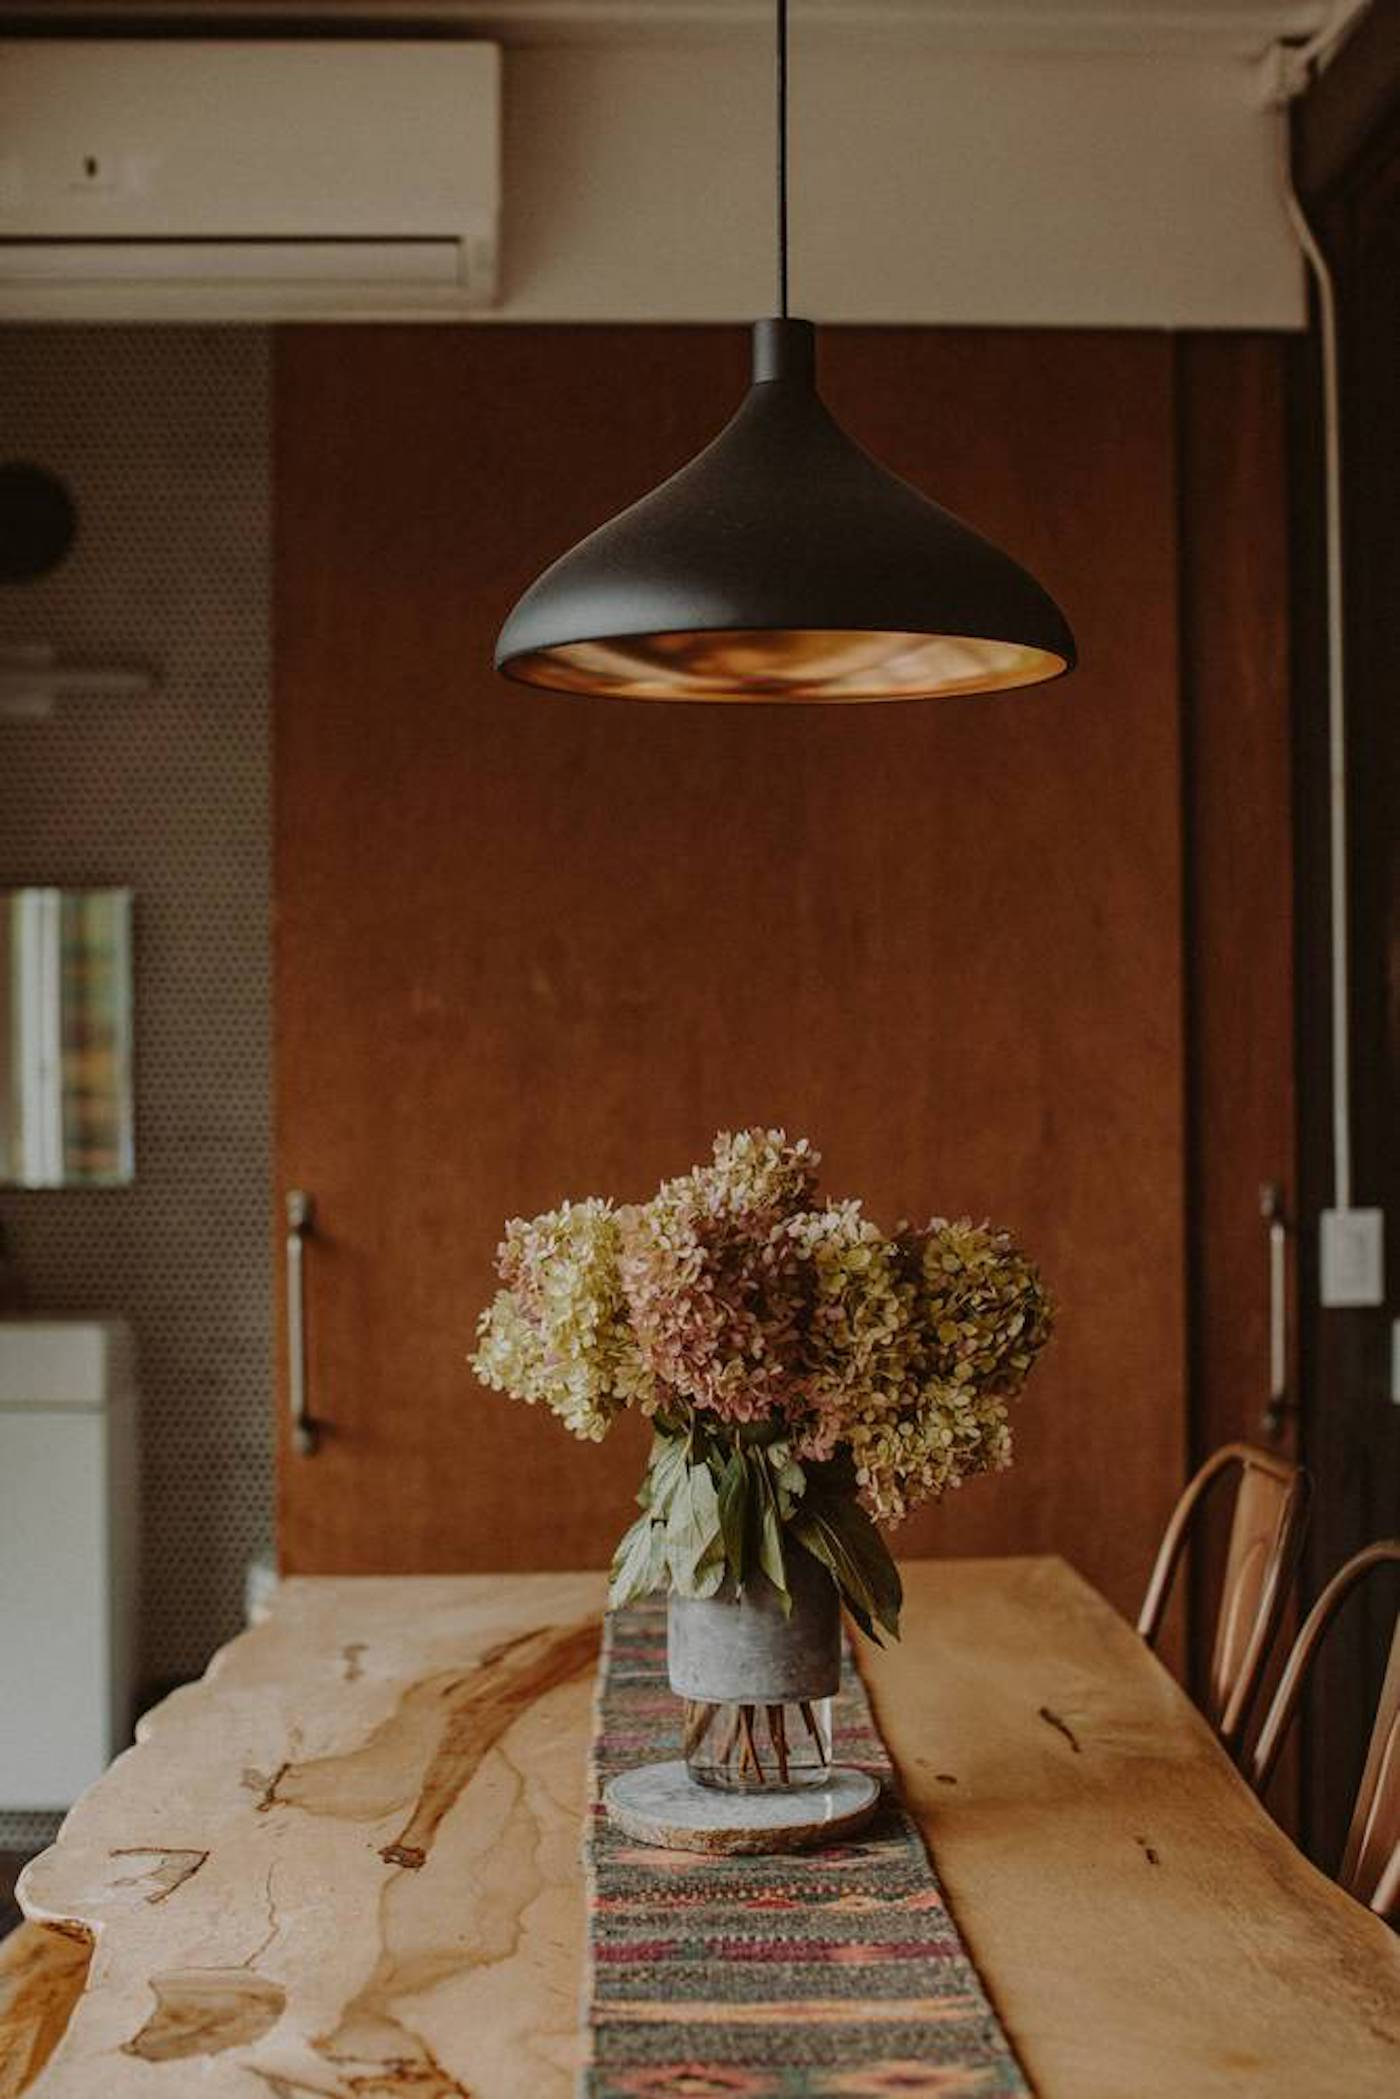 Timber dining table with black pendant light hanging above